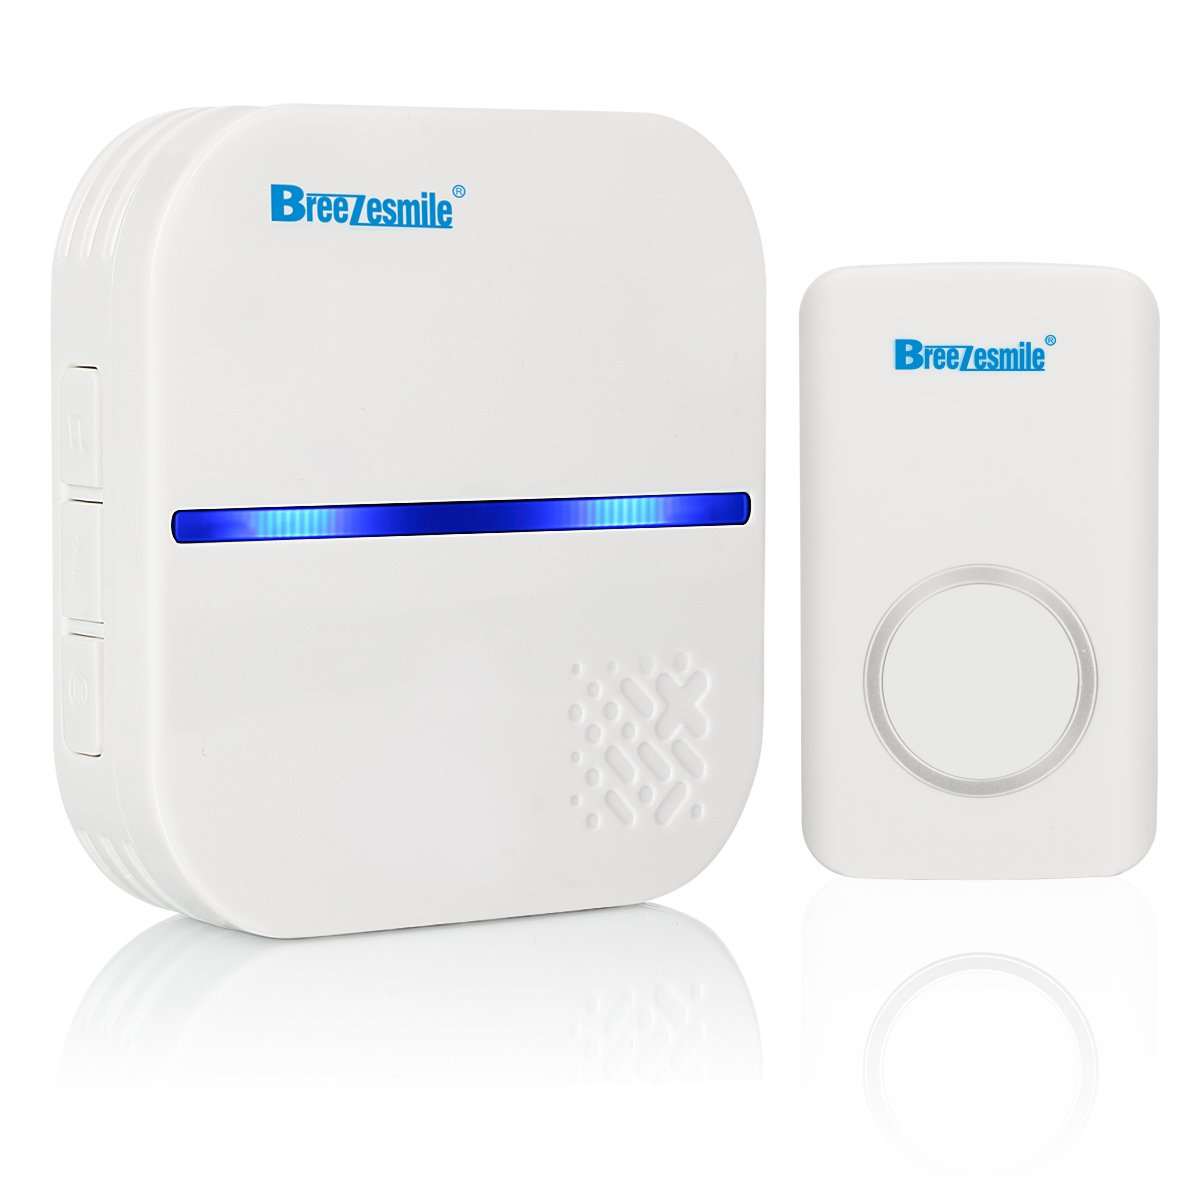 Wireless Doorbell Kit Breezesmile Self Powered Chimes kit with 1 Remote Button and 1 Plug in Receiver 58 Chimes 4 Volume Levels LED Indicator No Batteries Required for Remote Button and Receiver